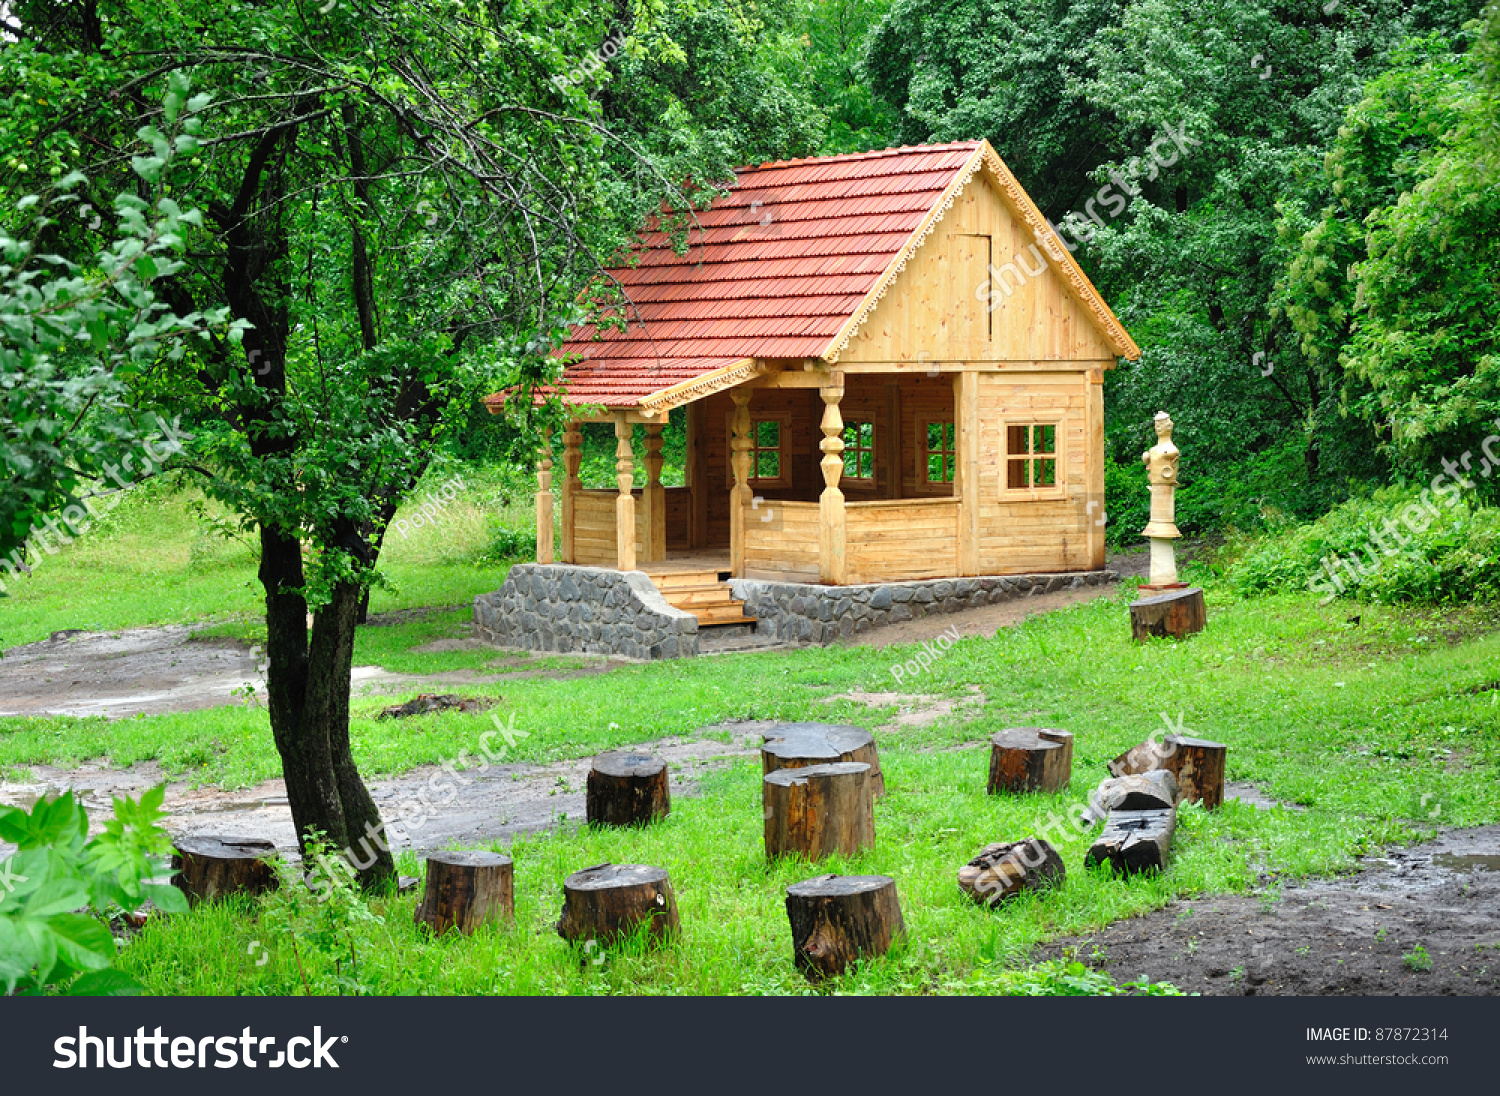 Surprising Small House Garden Stock Photo 87872314 Shutterstock Largest Home Design Picture Inspirations Pitcheantrous